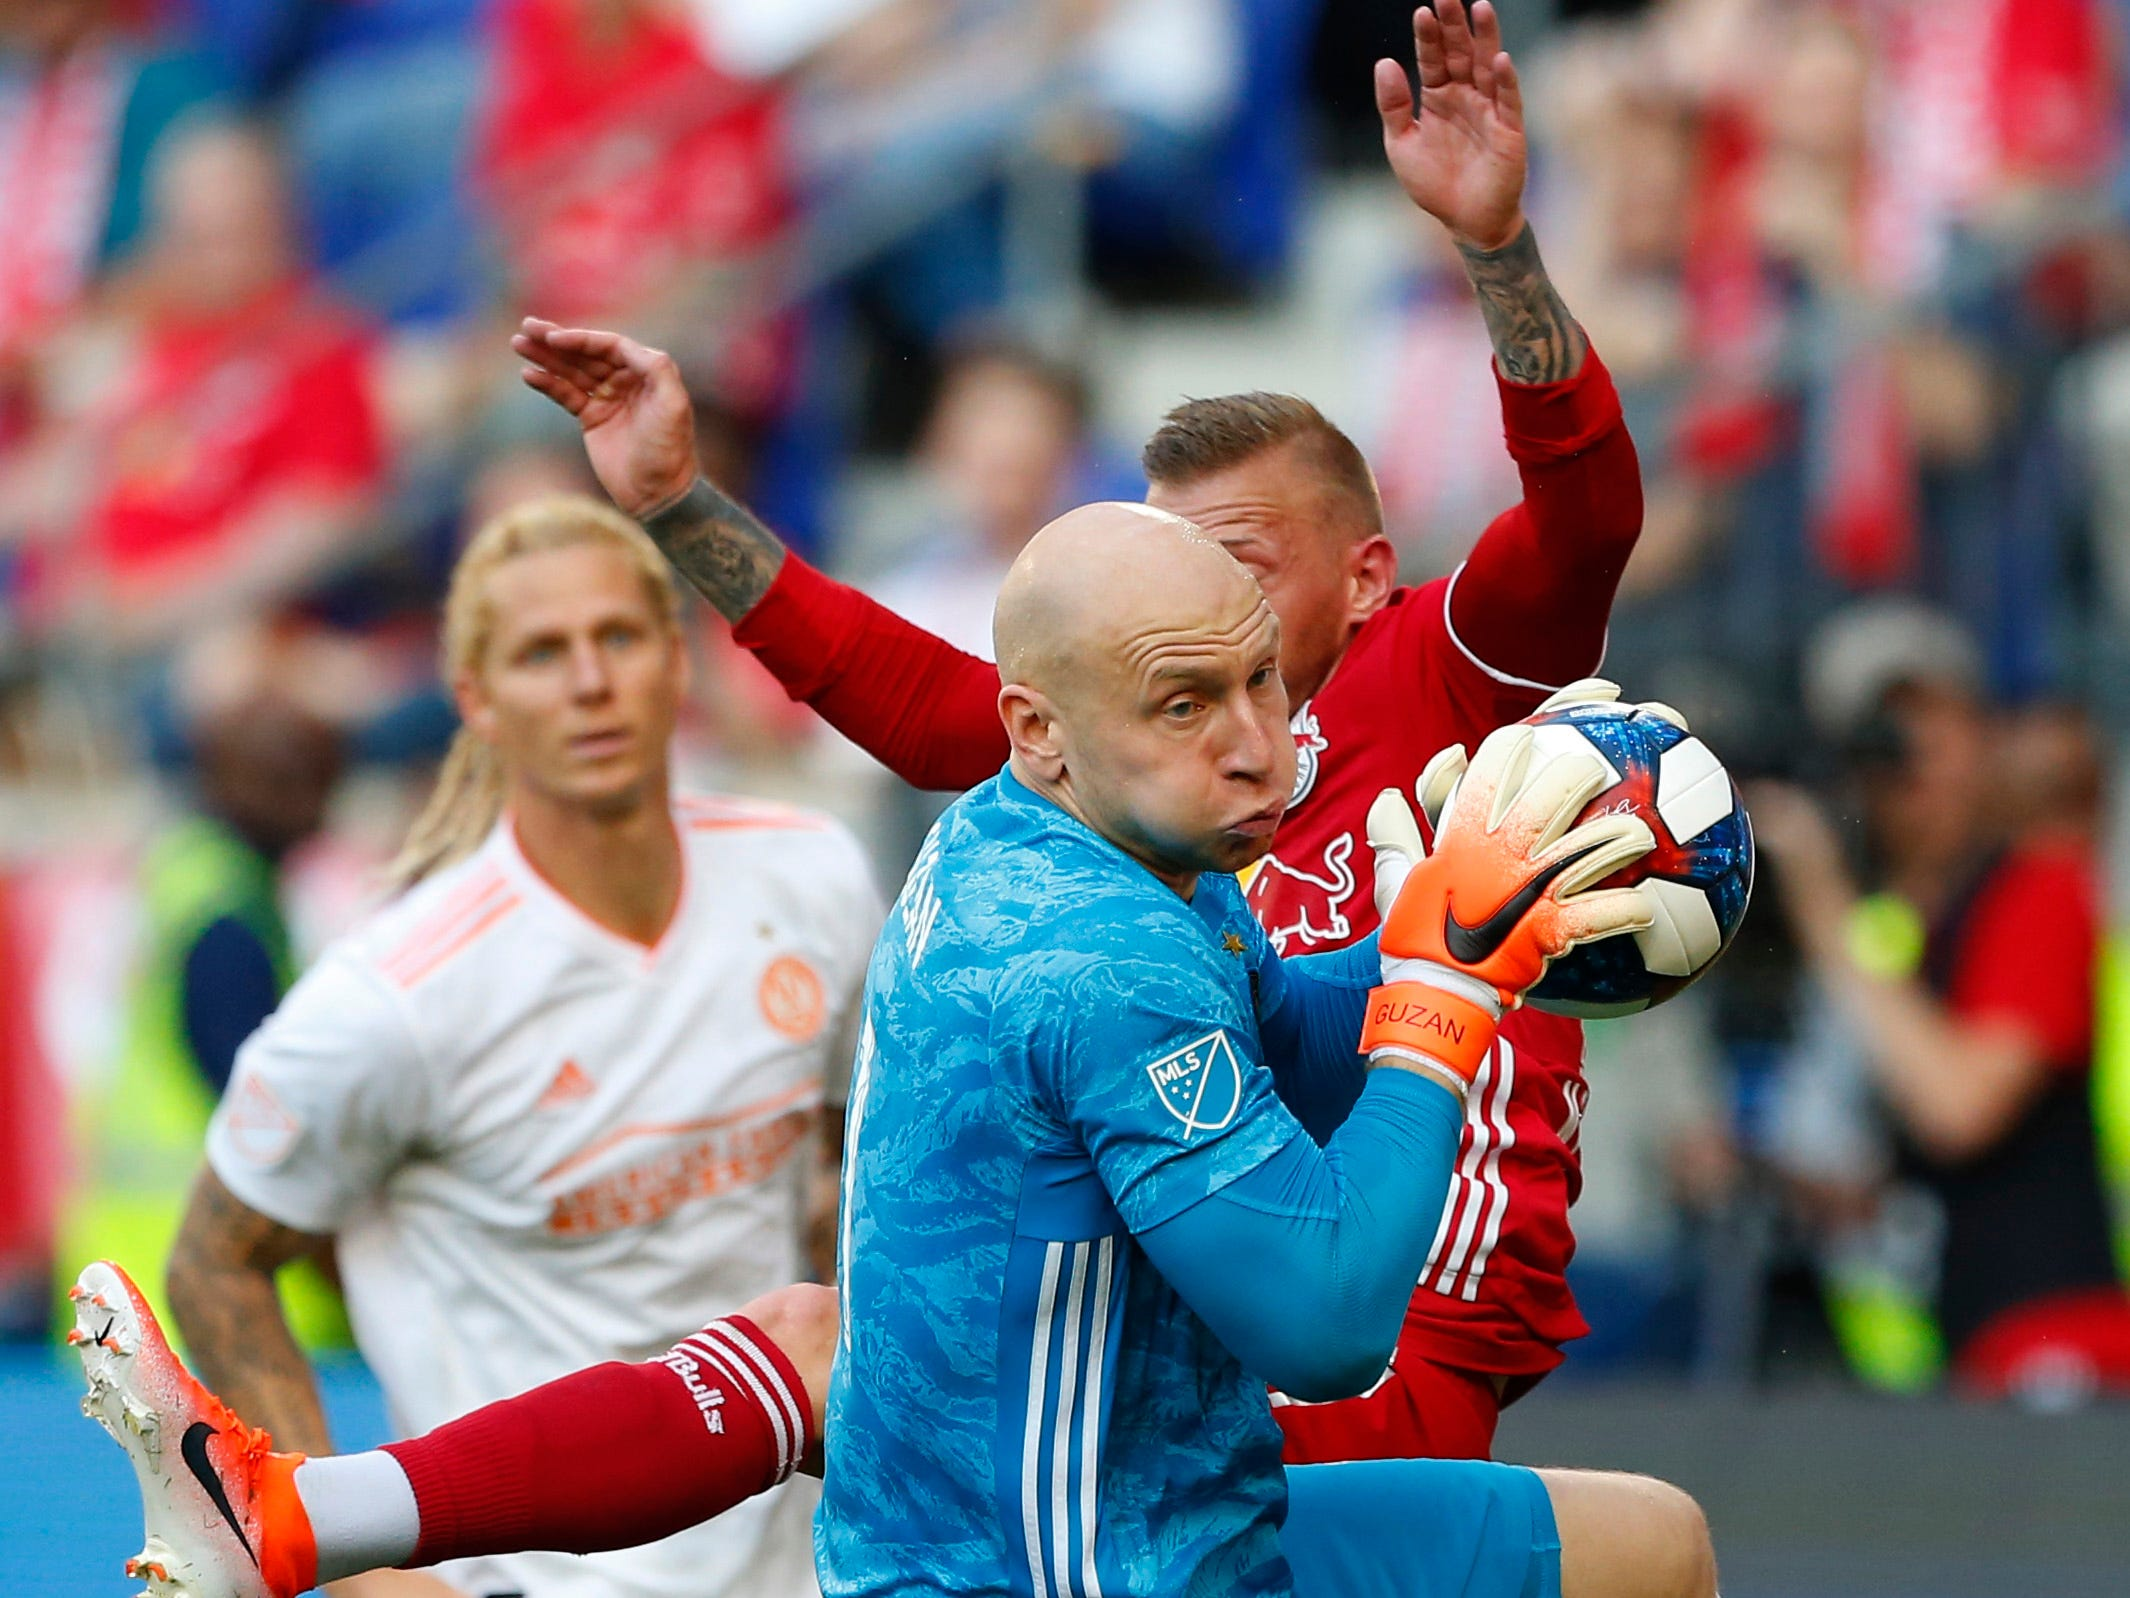 May 19:  Atlanta United FC goalkeeper Brad Guzan makes a save against New York Red Bulls midfielder Daniel Royer during the second half at Red Bull Arena. The New York Red Bulls won the game, 1-0.